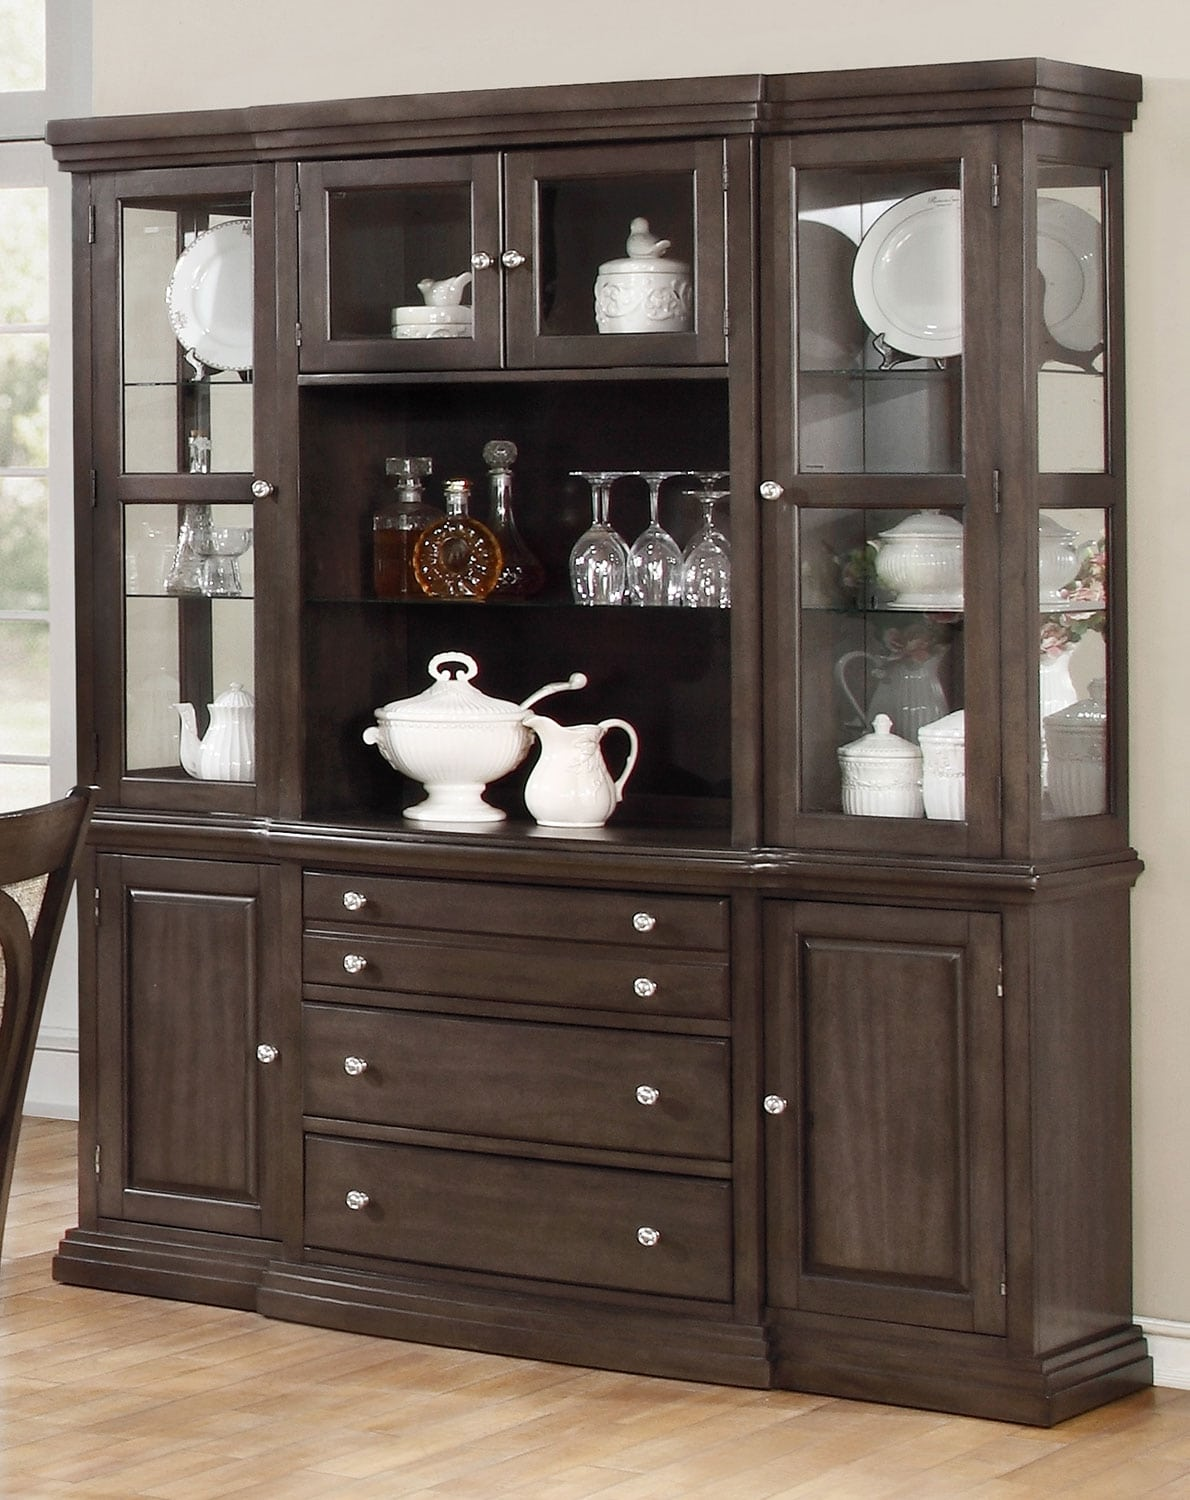 Dining Room Furniture - Beaumont Buffet and Hutch